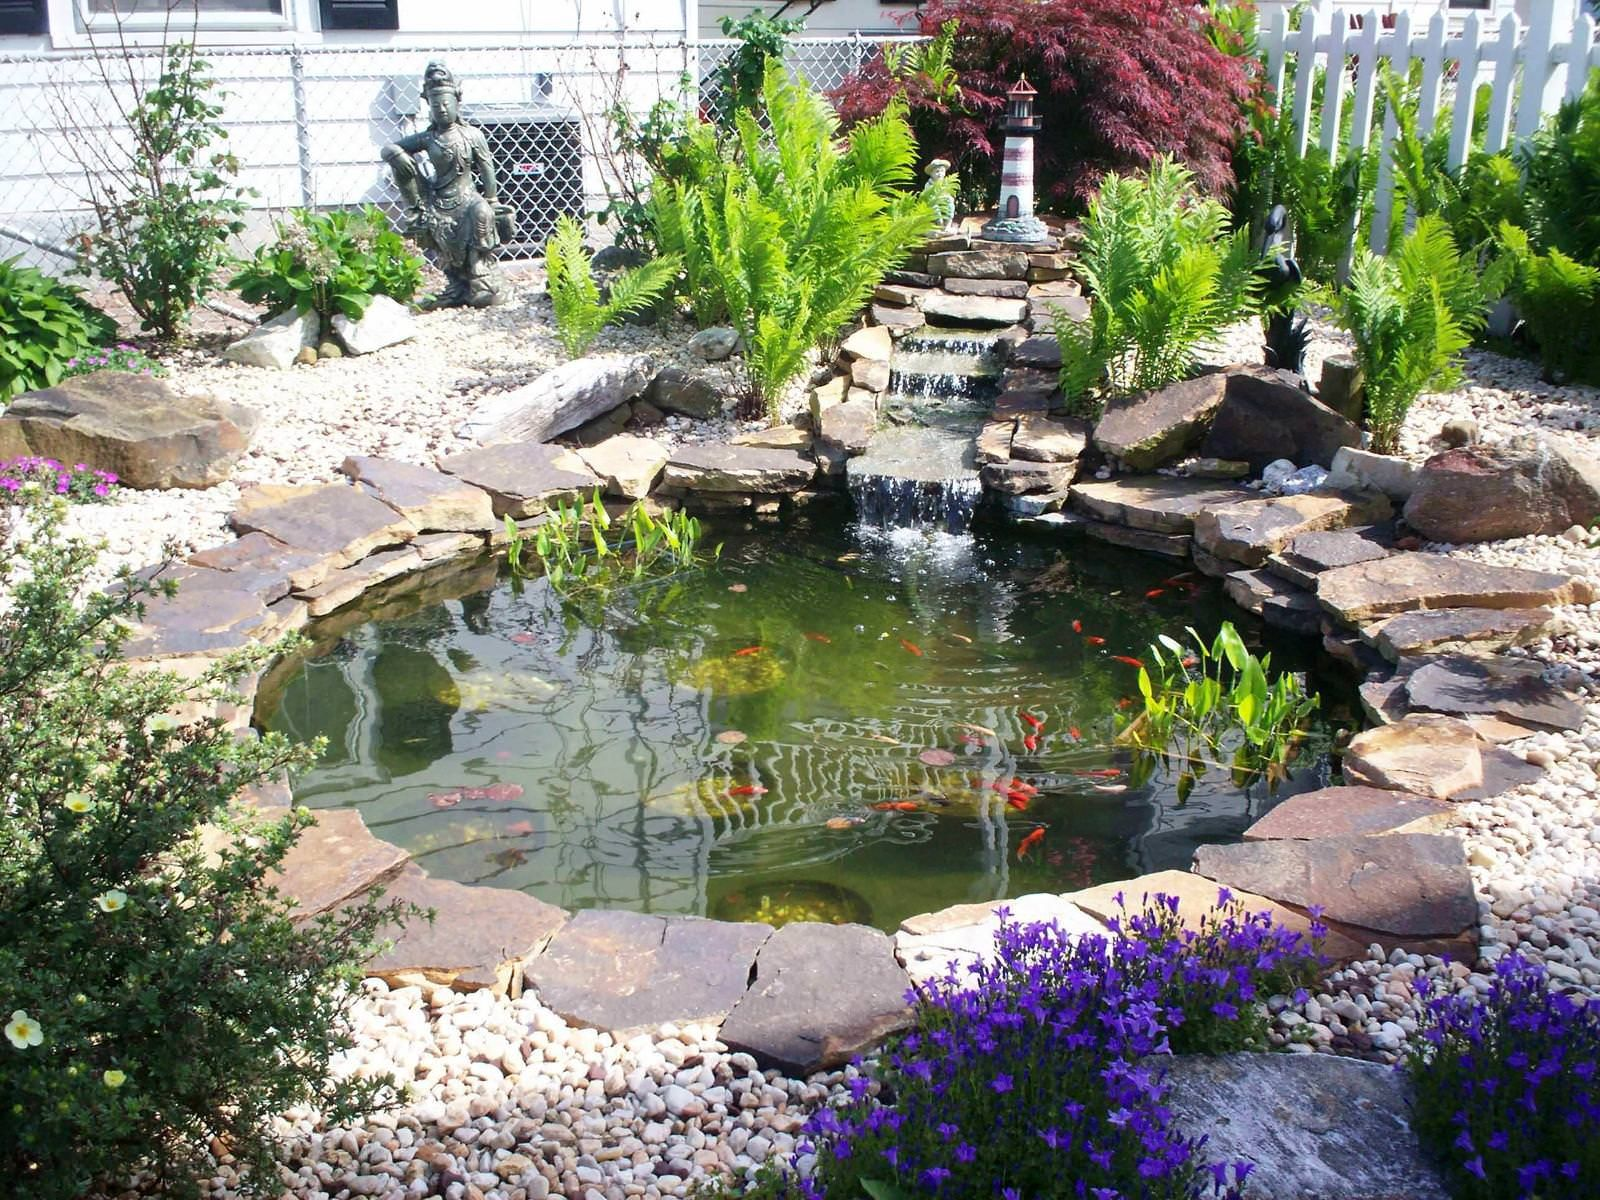 Small garden or backyard aquarium ideas practic ideas for Small pond design ideas